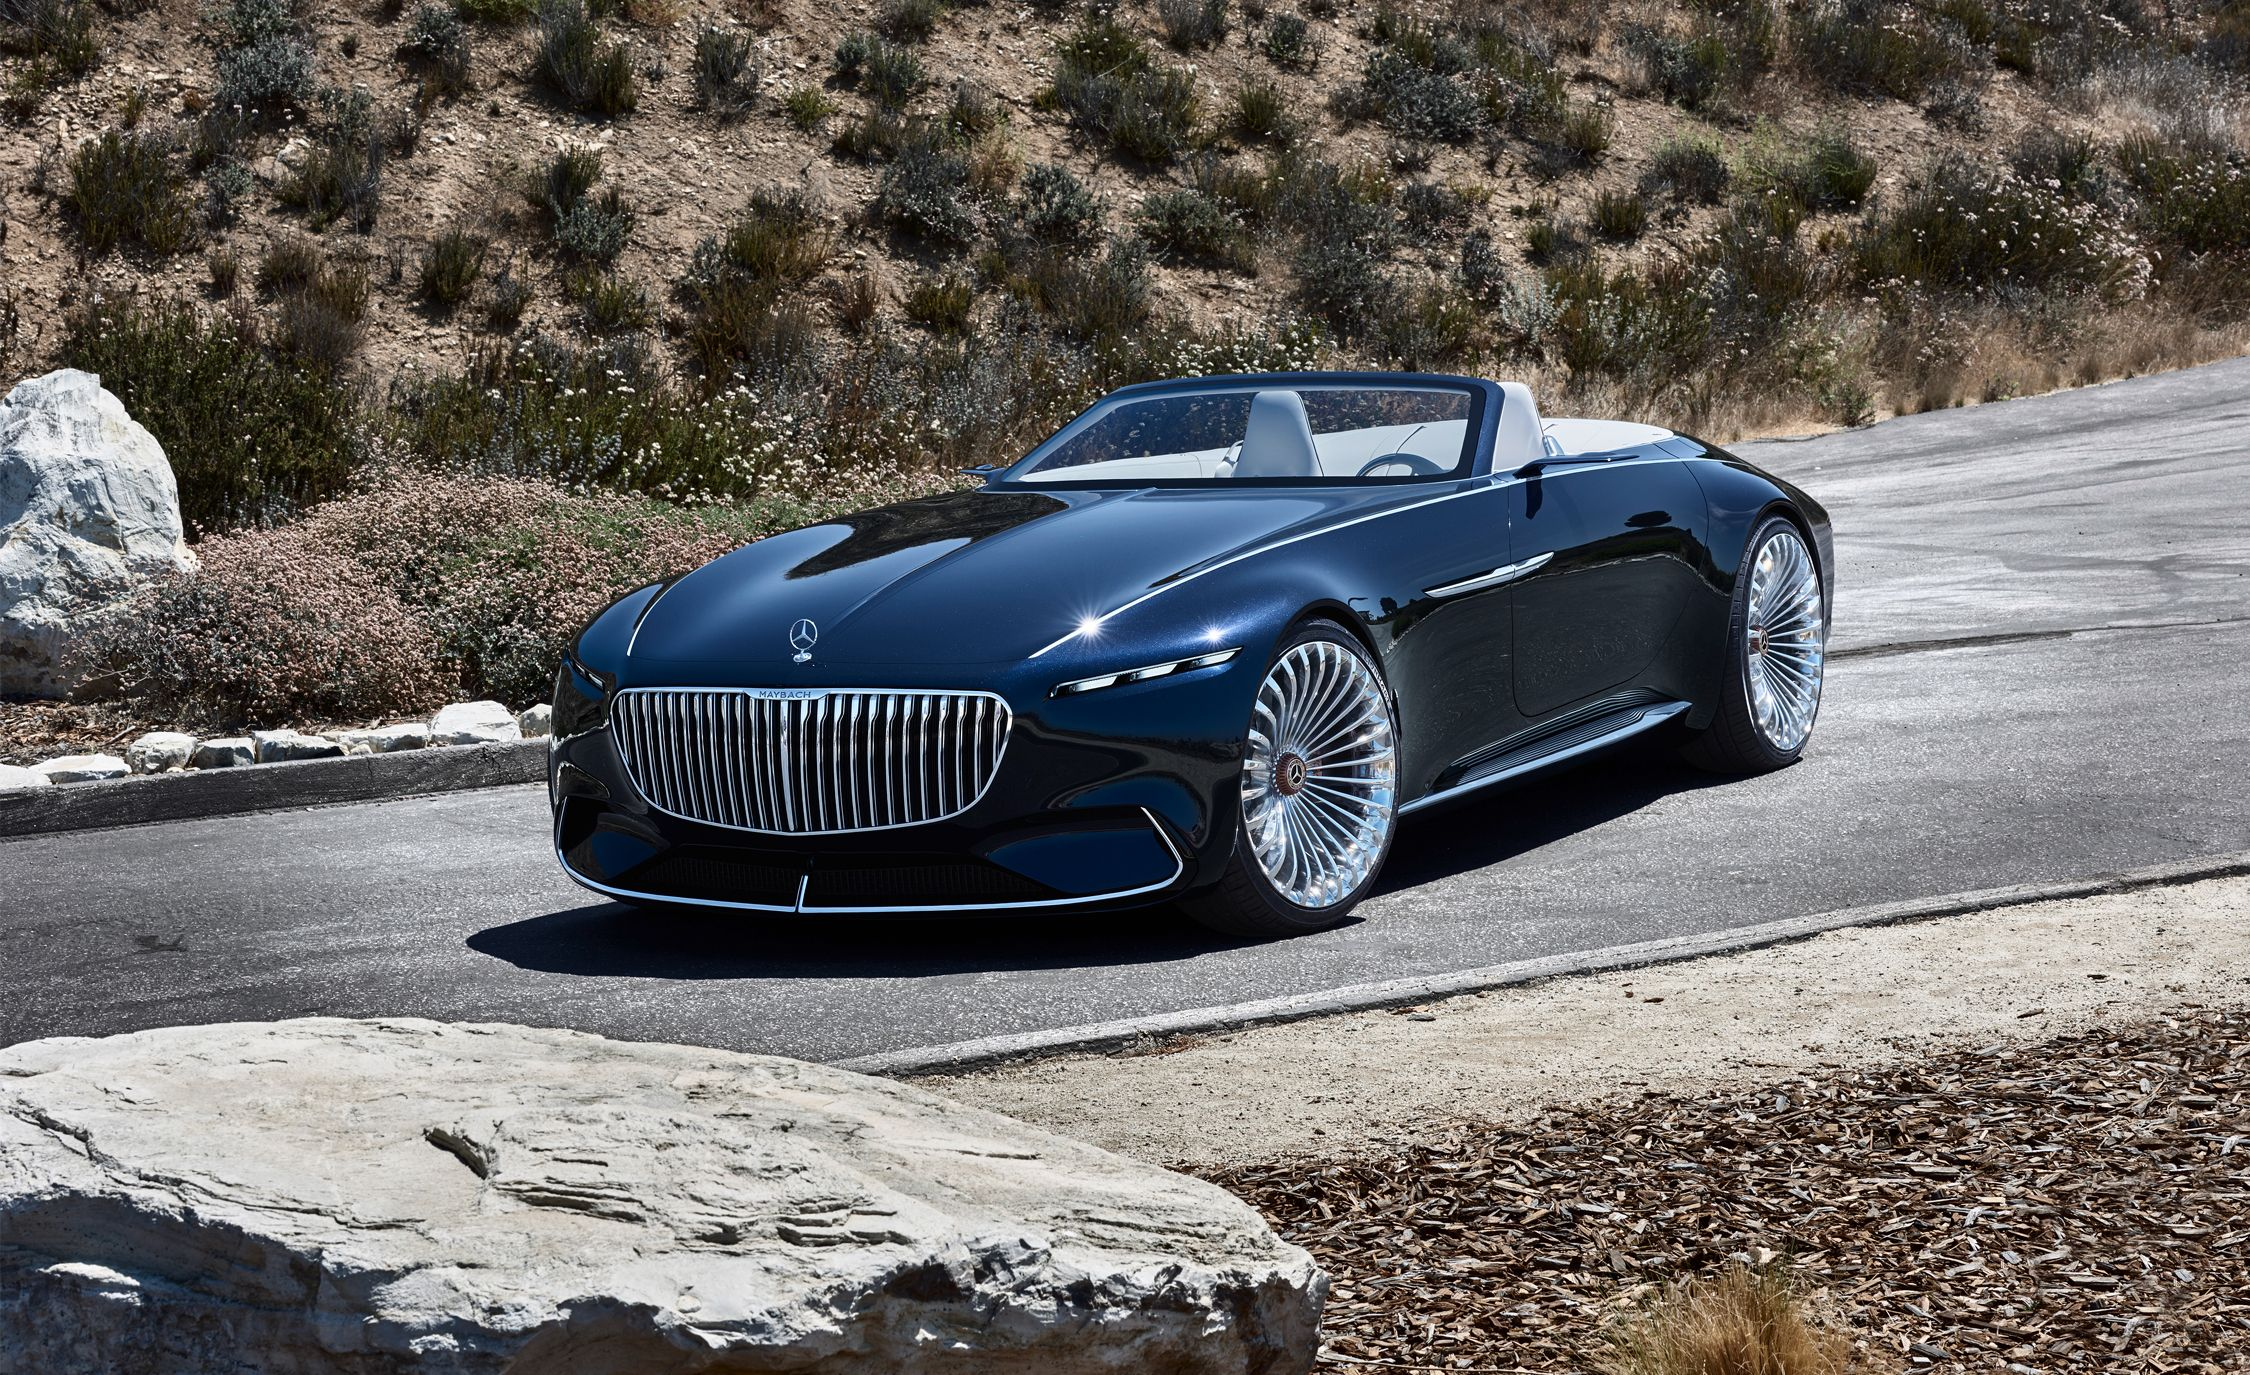 2018 maybach 6 price. Interesting Price Vision MercedesMaybach 6 Cabriolet Photos And Info  News Car Driver On 2018 Maybach Price